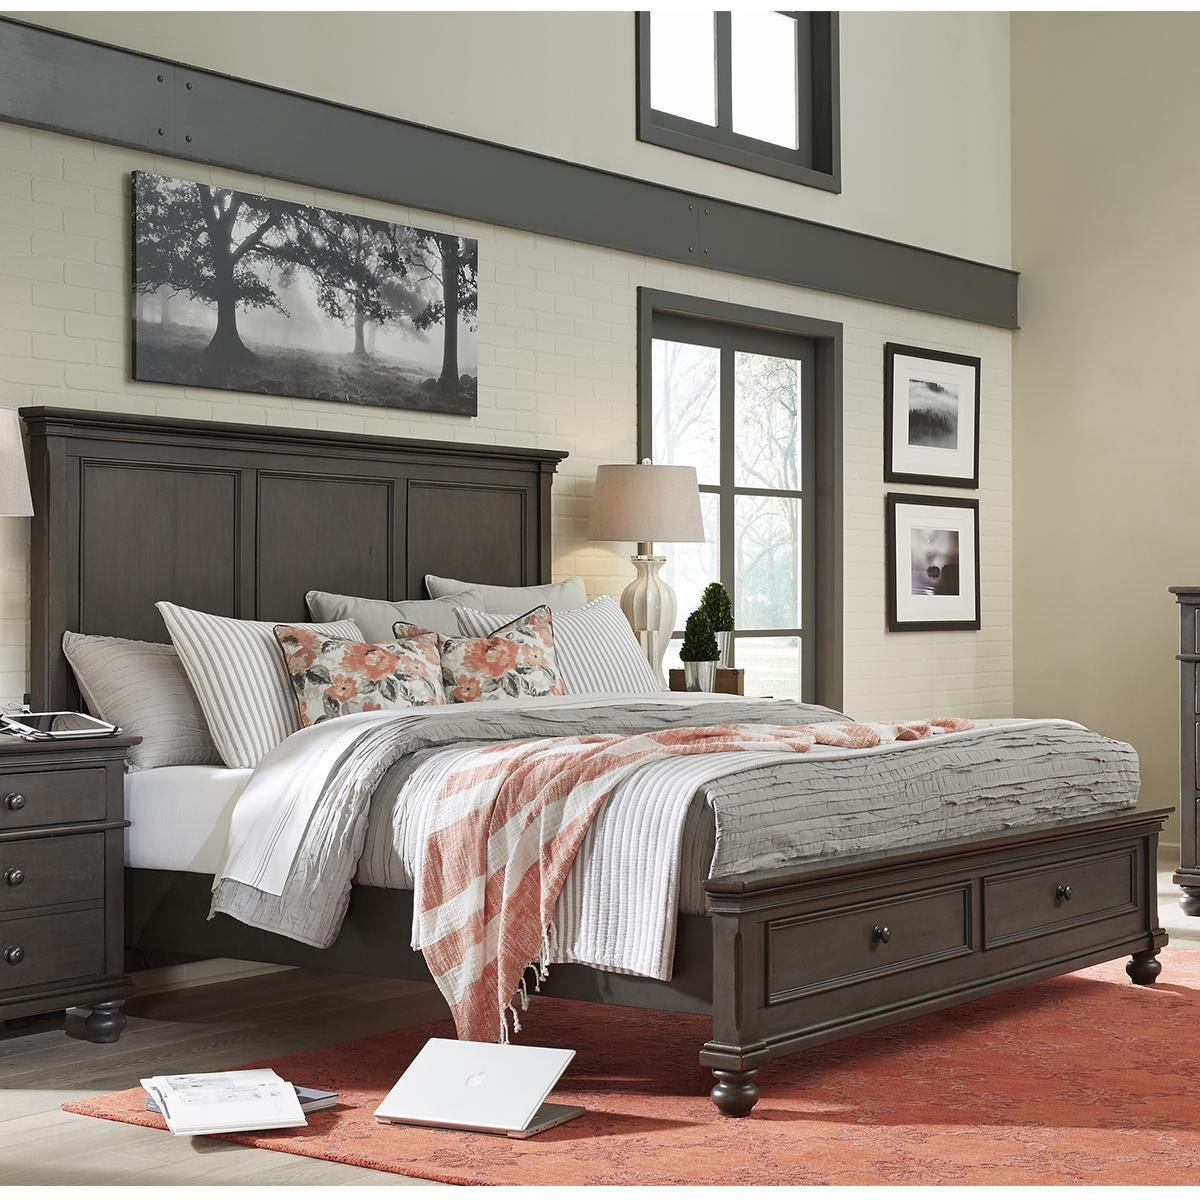 King Bedroom Set with Mattress Lovely Riva Ridge Oxford 4 Piece King Bedroom Set In Peppercorn